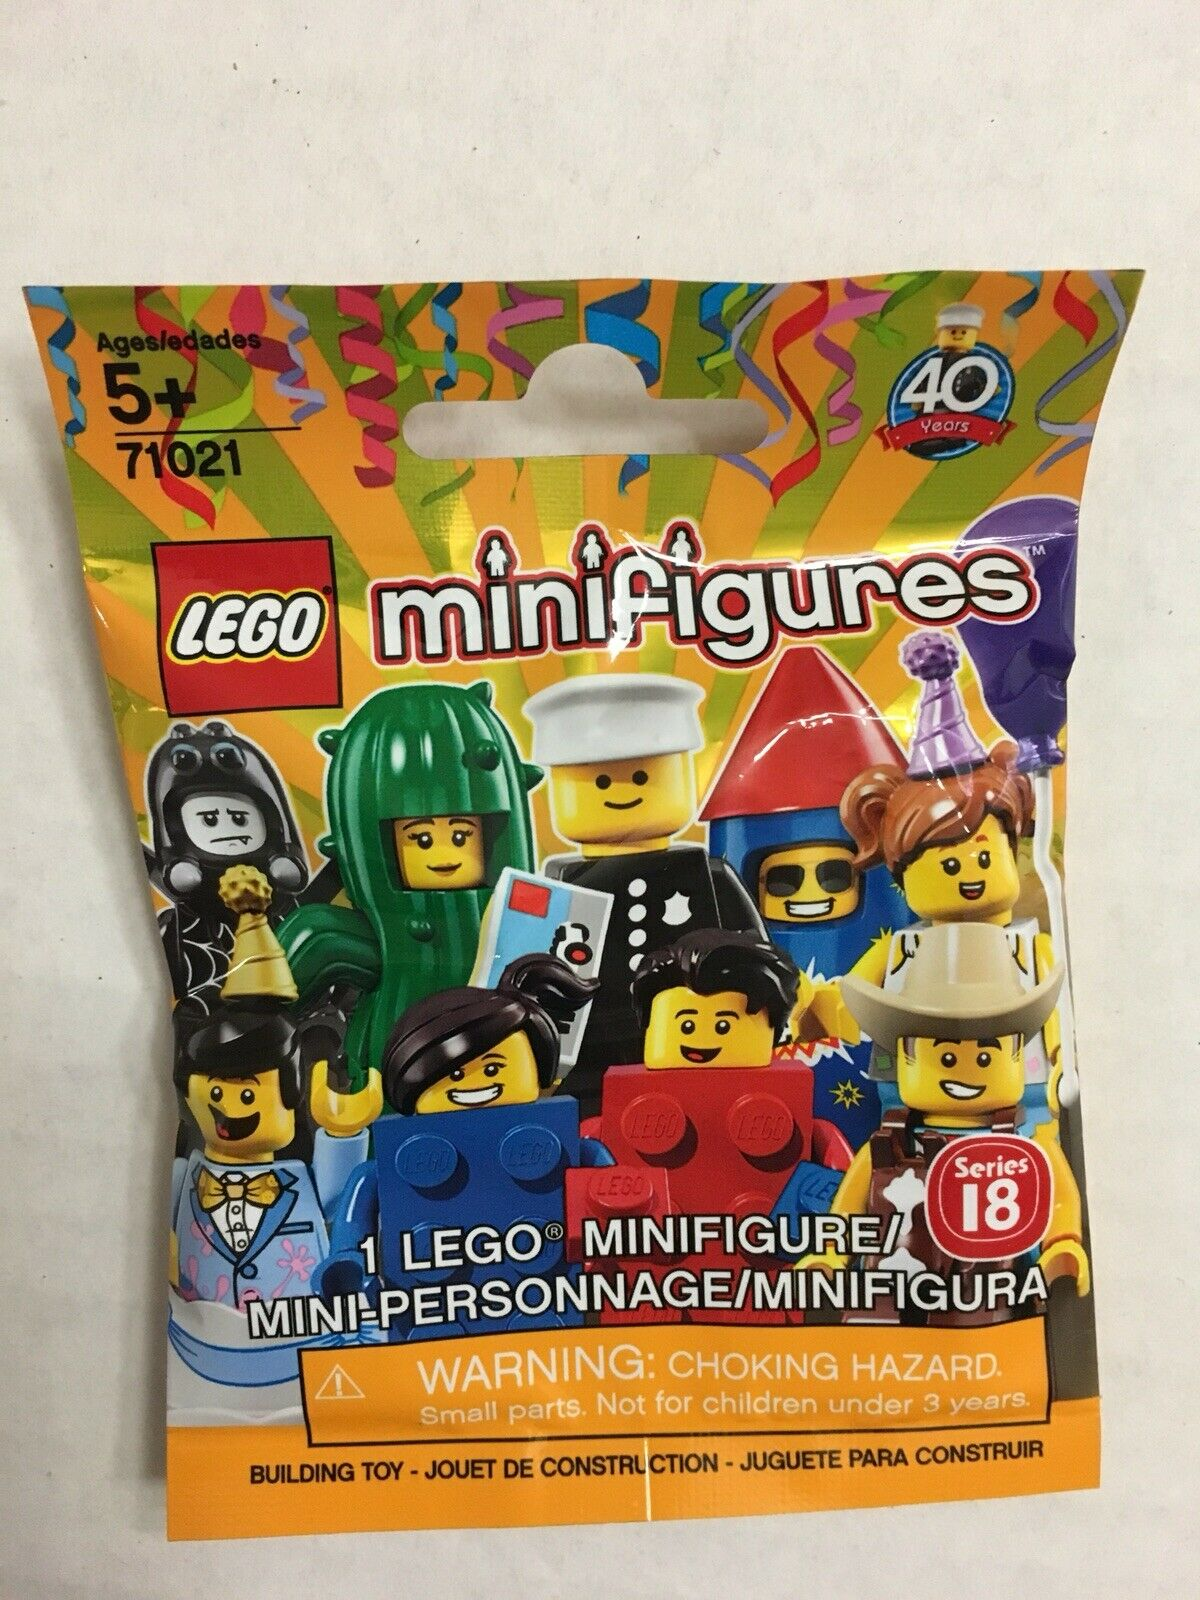 UNOPENED LEGO 71021 Minifigures Series 18 COMPLETE COMPLETE COMPLETE SET OF 17 WITH POLICE OFFICER f80cf7